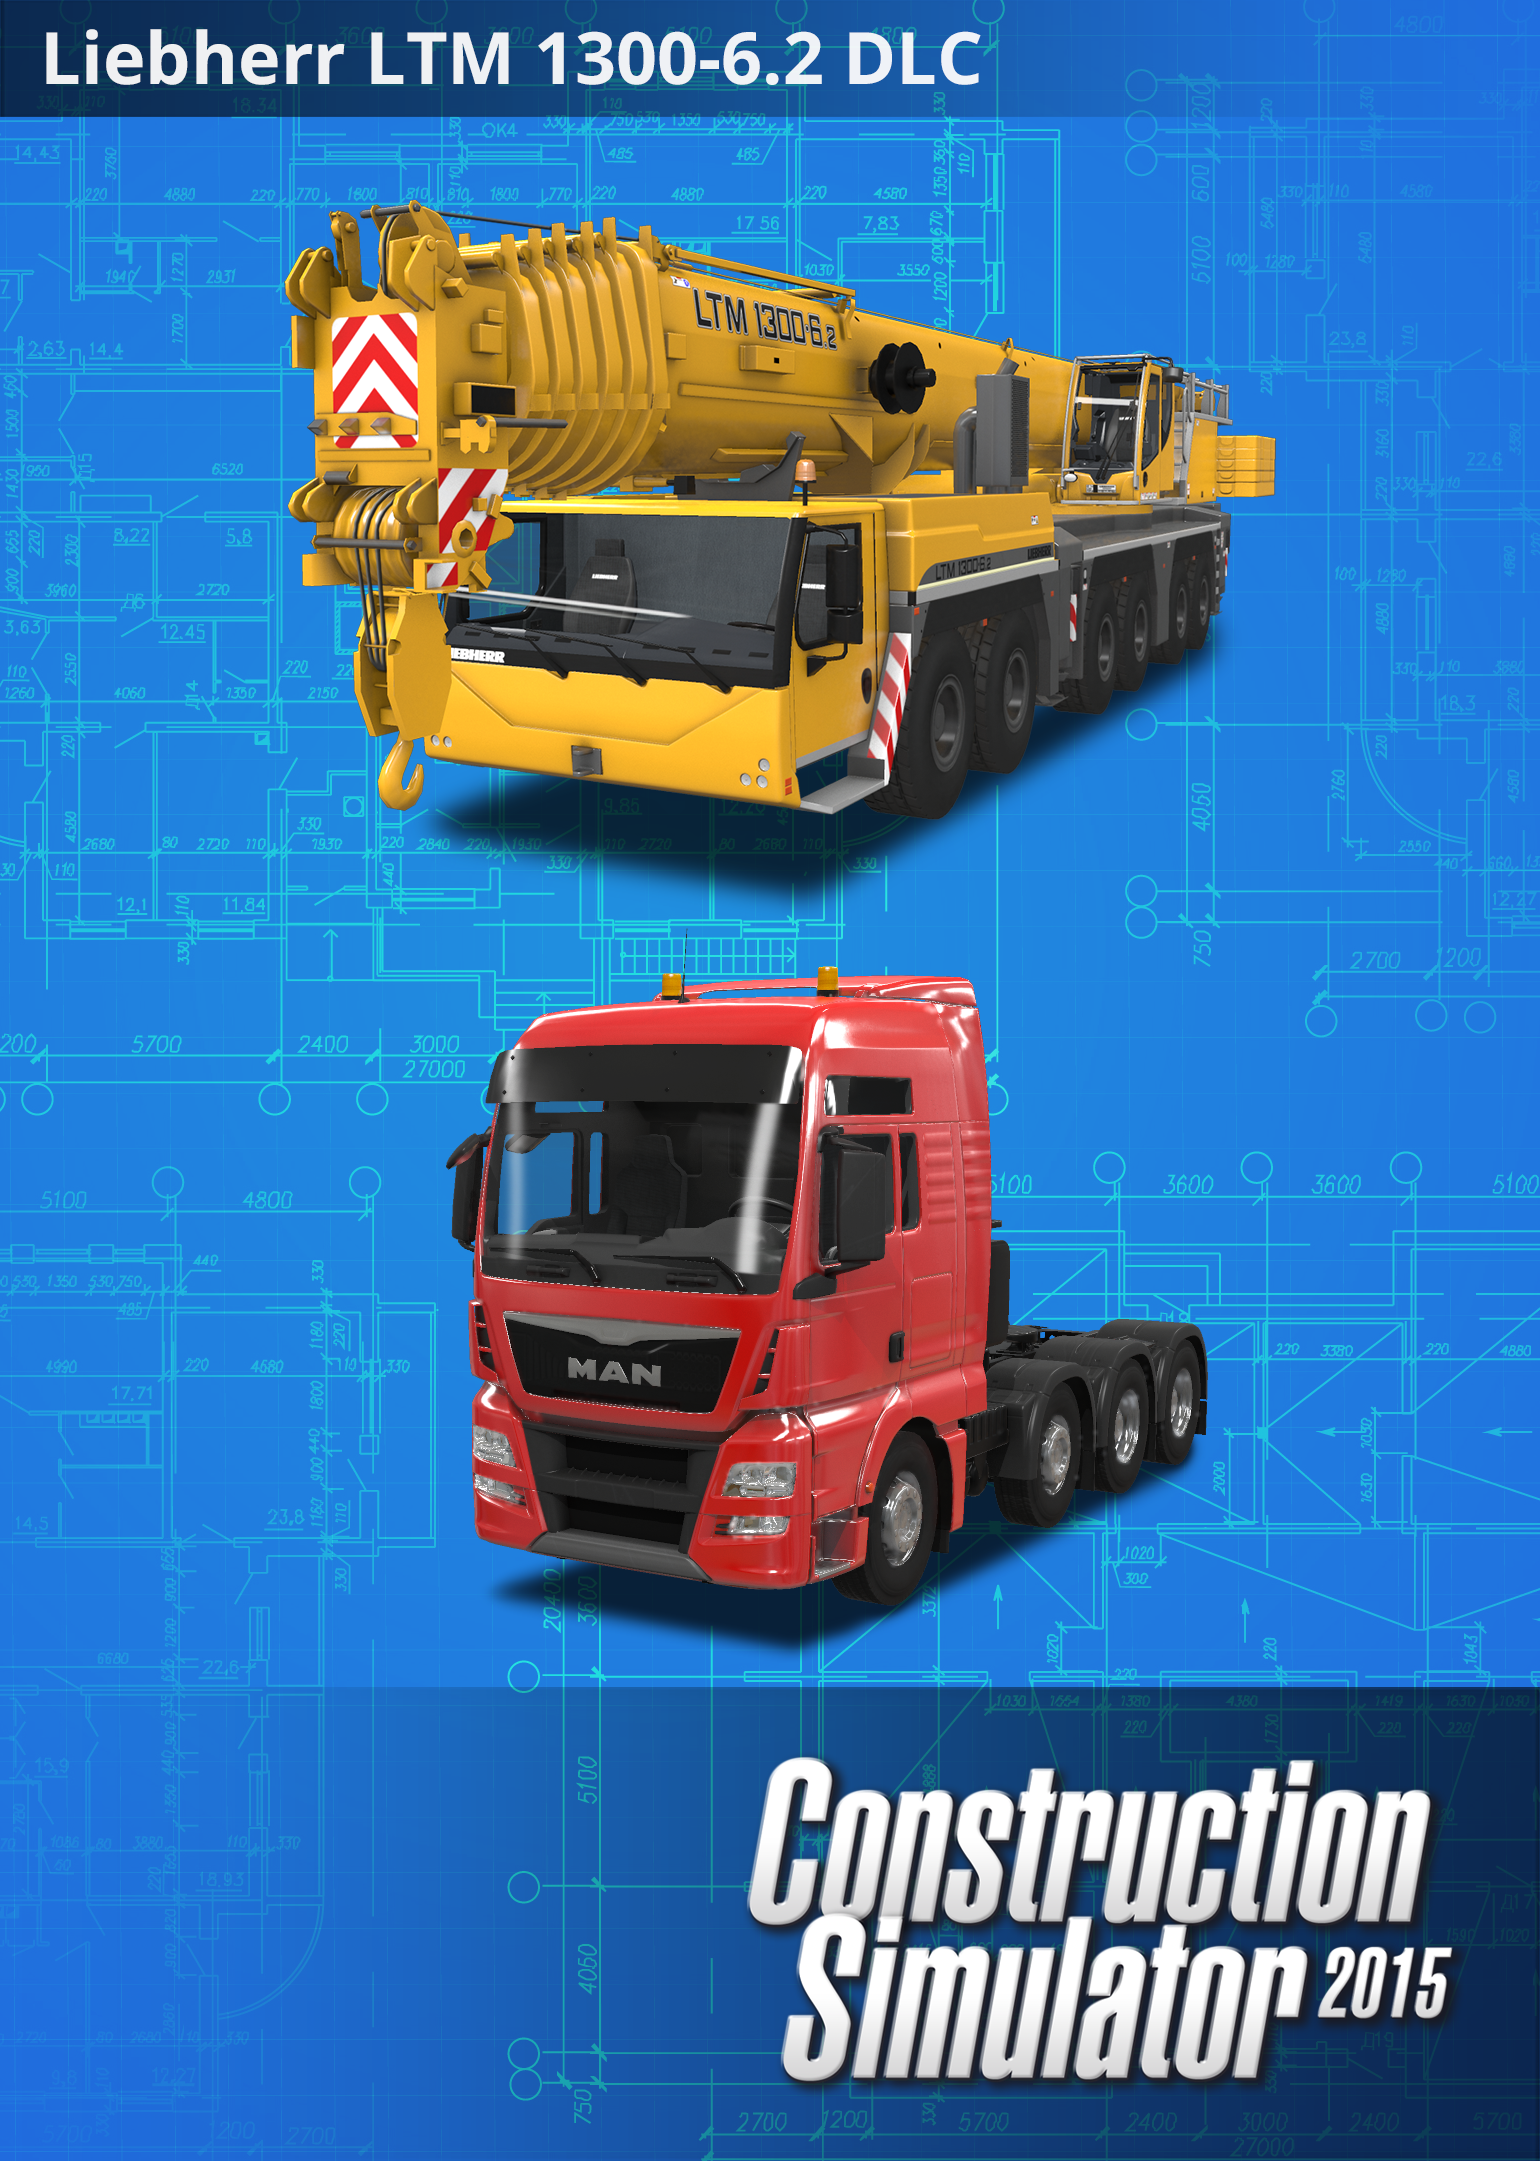 construction-simulator-2015-liebherr-ltm-1300-62-online-game-code